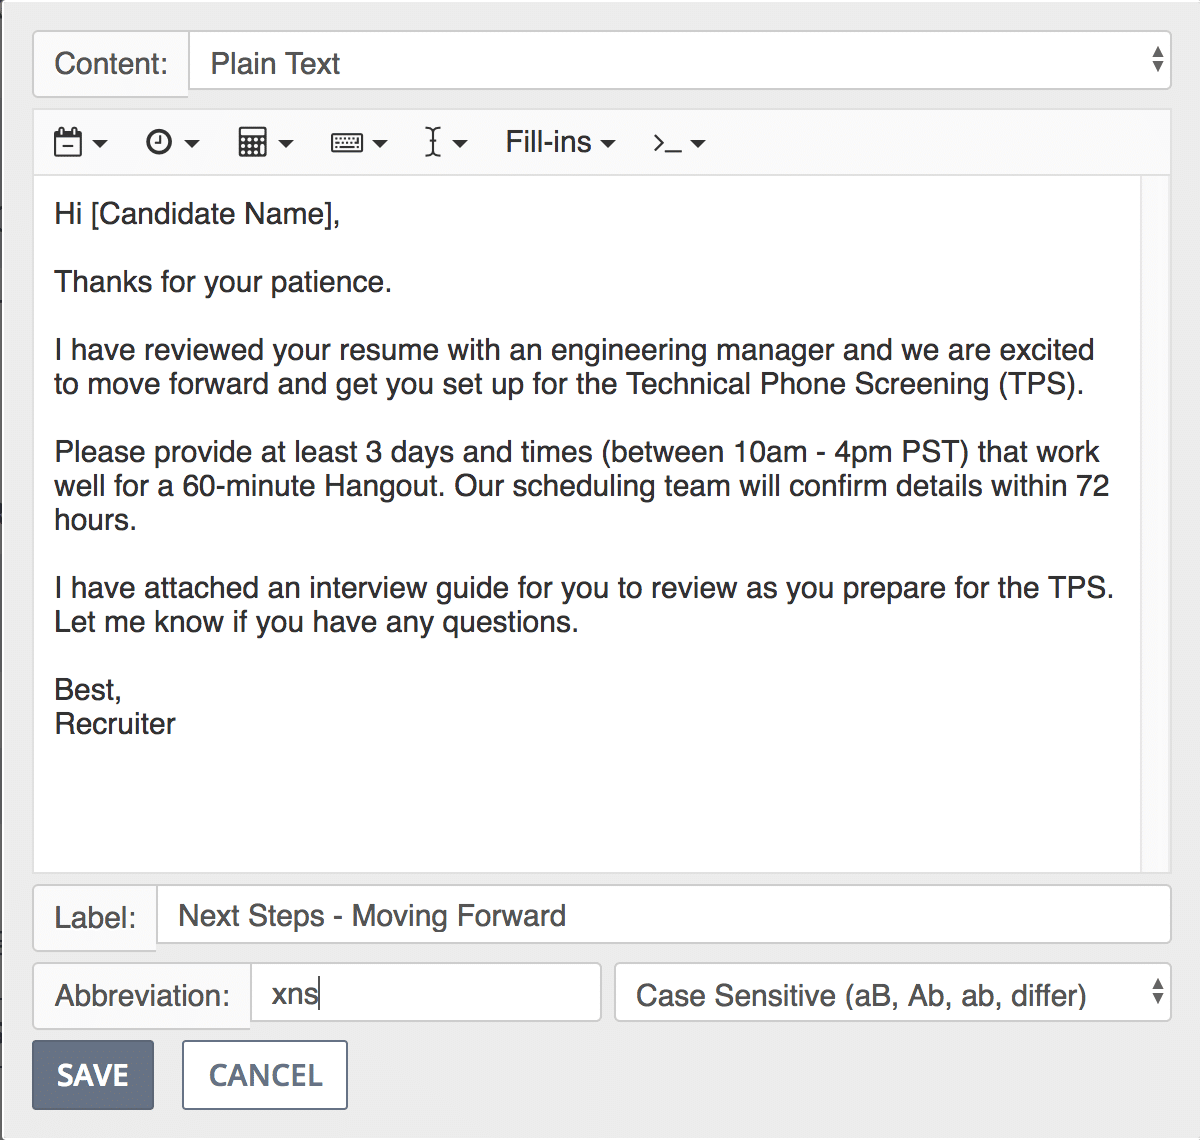 Preview of snippet for next steps email